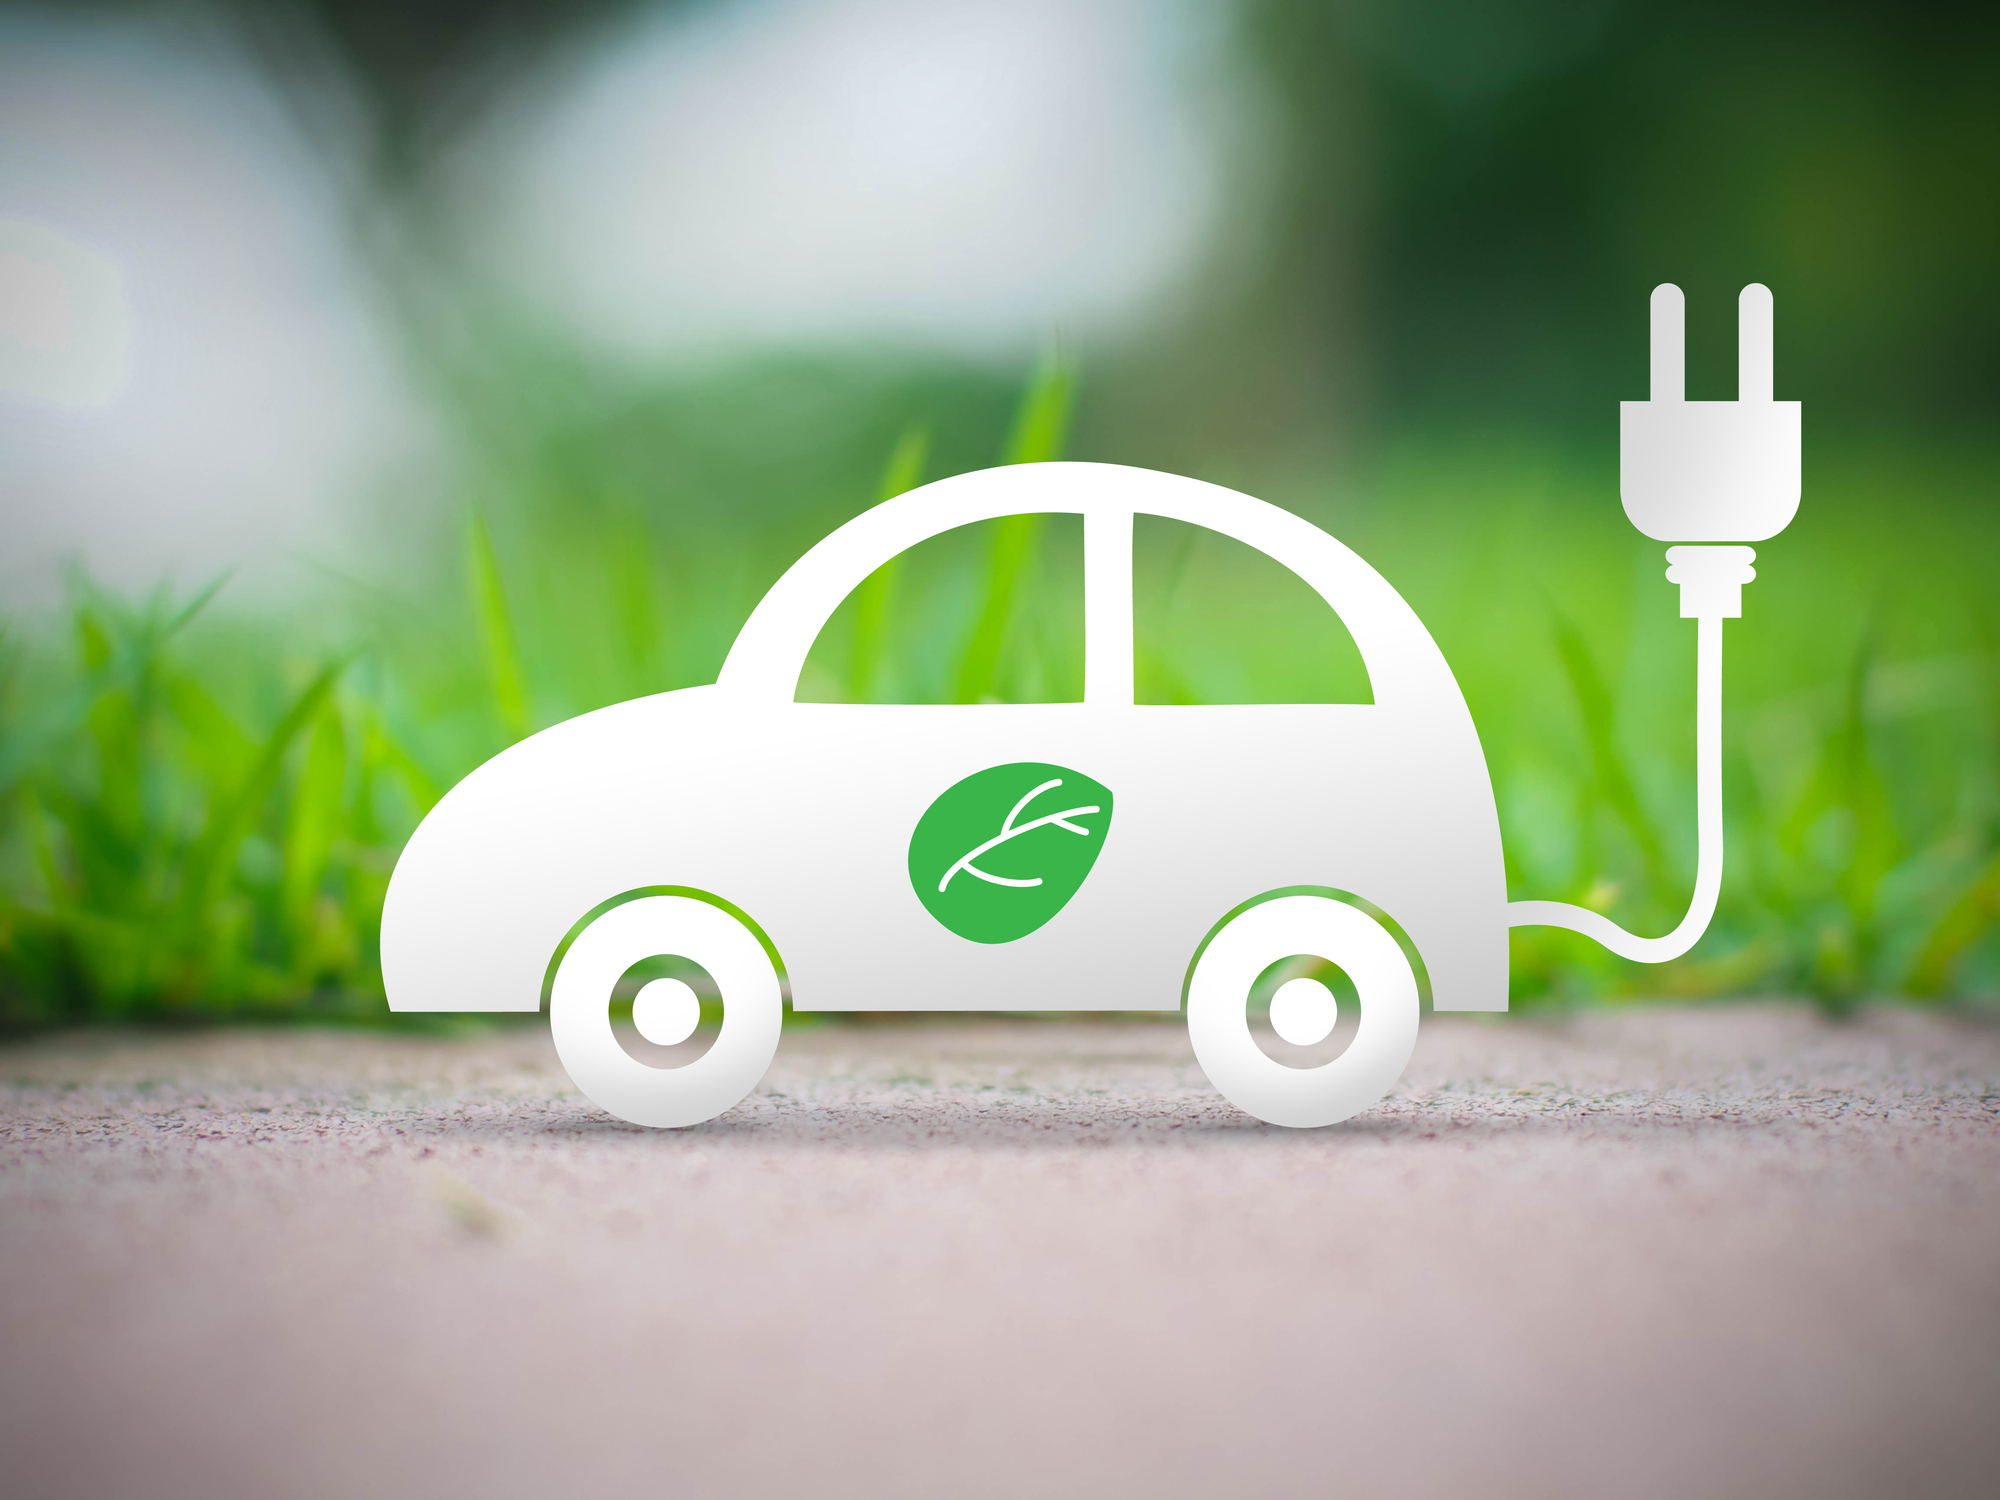 1,000 more electric chargers in the next 5 years